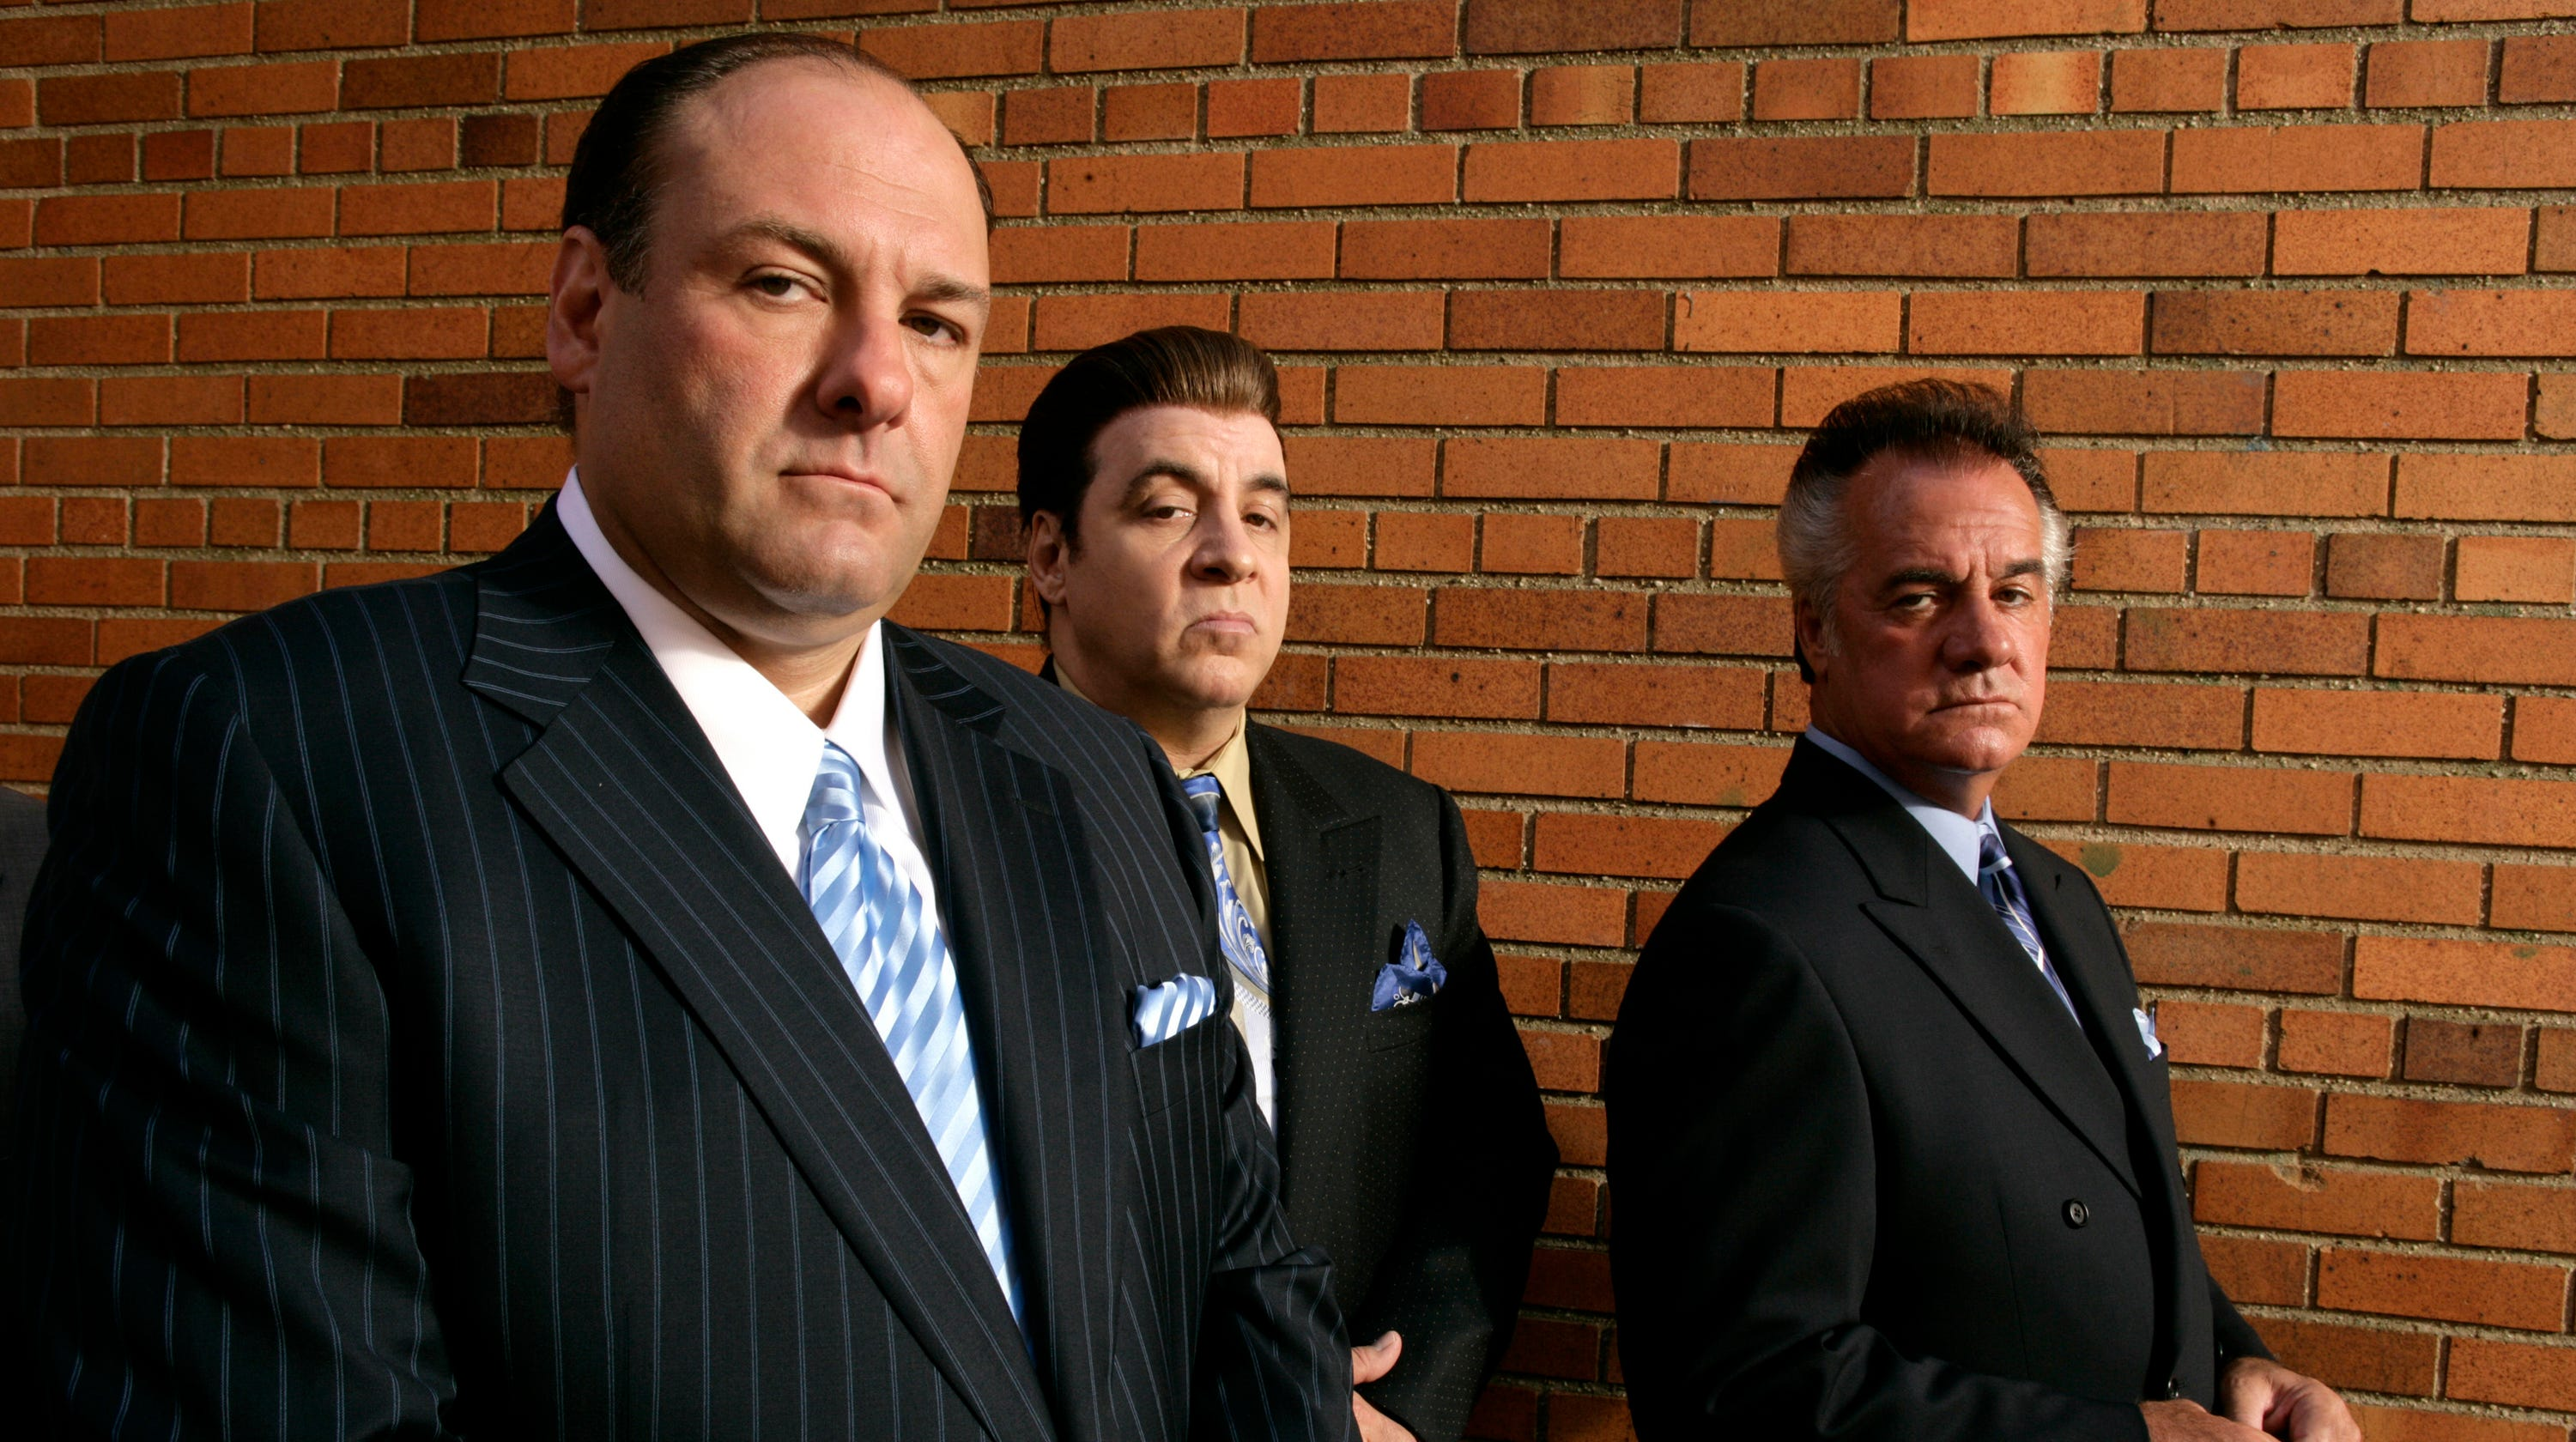 The Sopranos,' launched 20 years ago, made TV hip and NJ cool